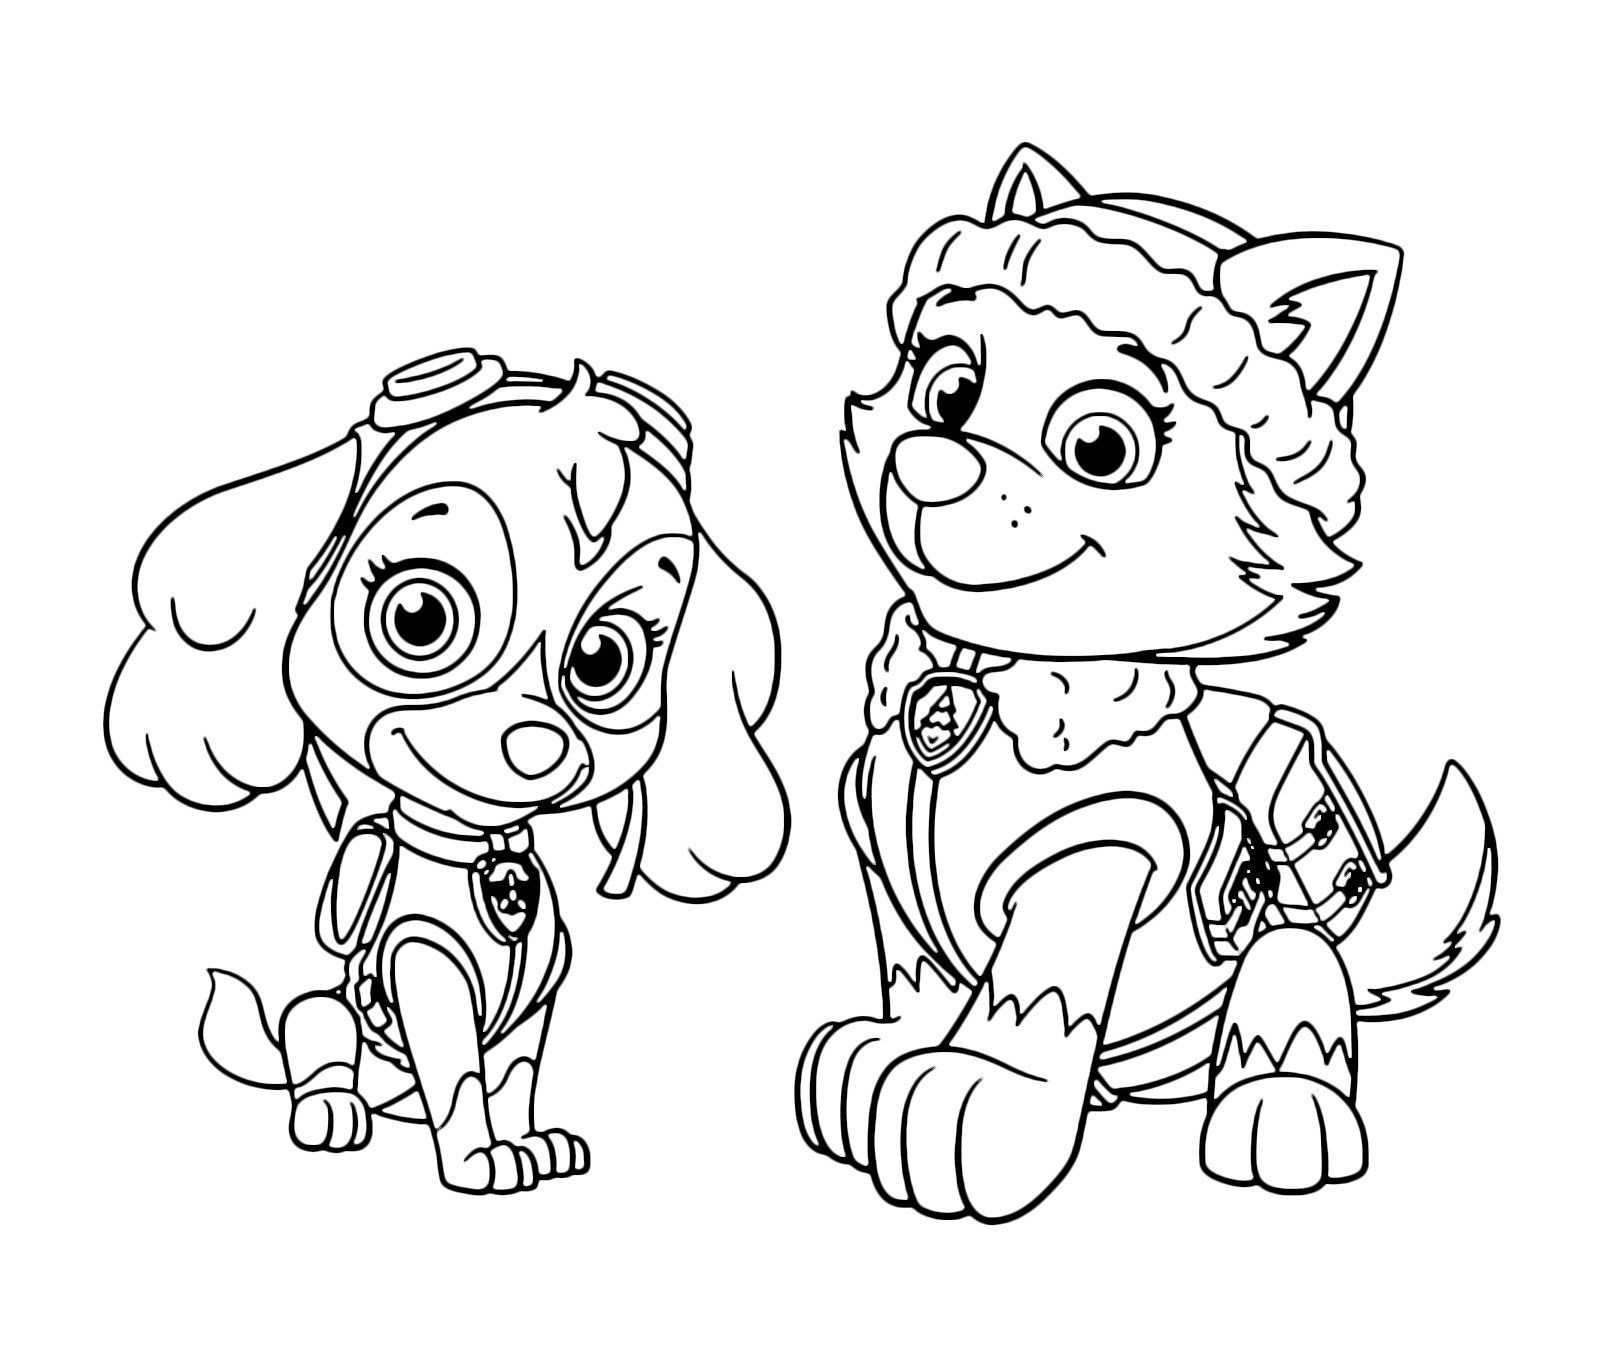 Zuma Coloring Pages New Paw Patrol Rocky Skye And Page Inside Free